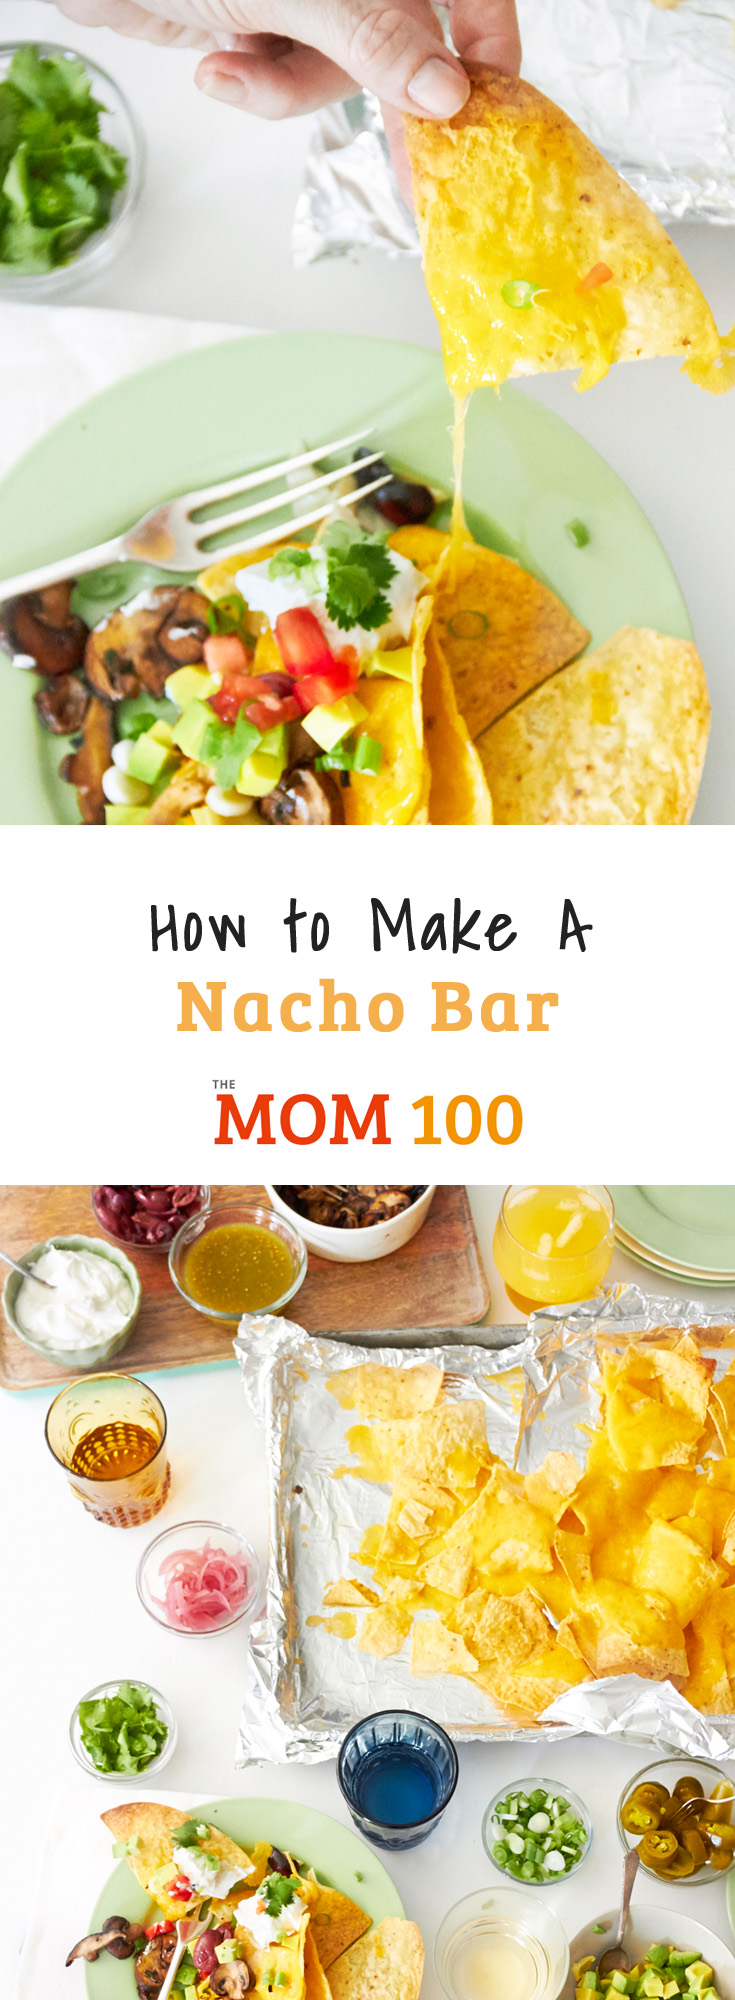 How to Make a Nacho Bar: It's Nacho Night with plenty of toppings for the ultimate nacho experience at a party or movie night. The possible combinations are endless.